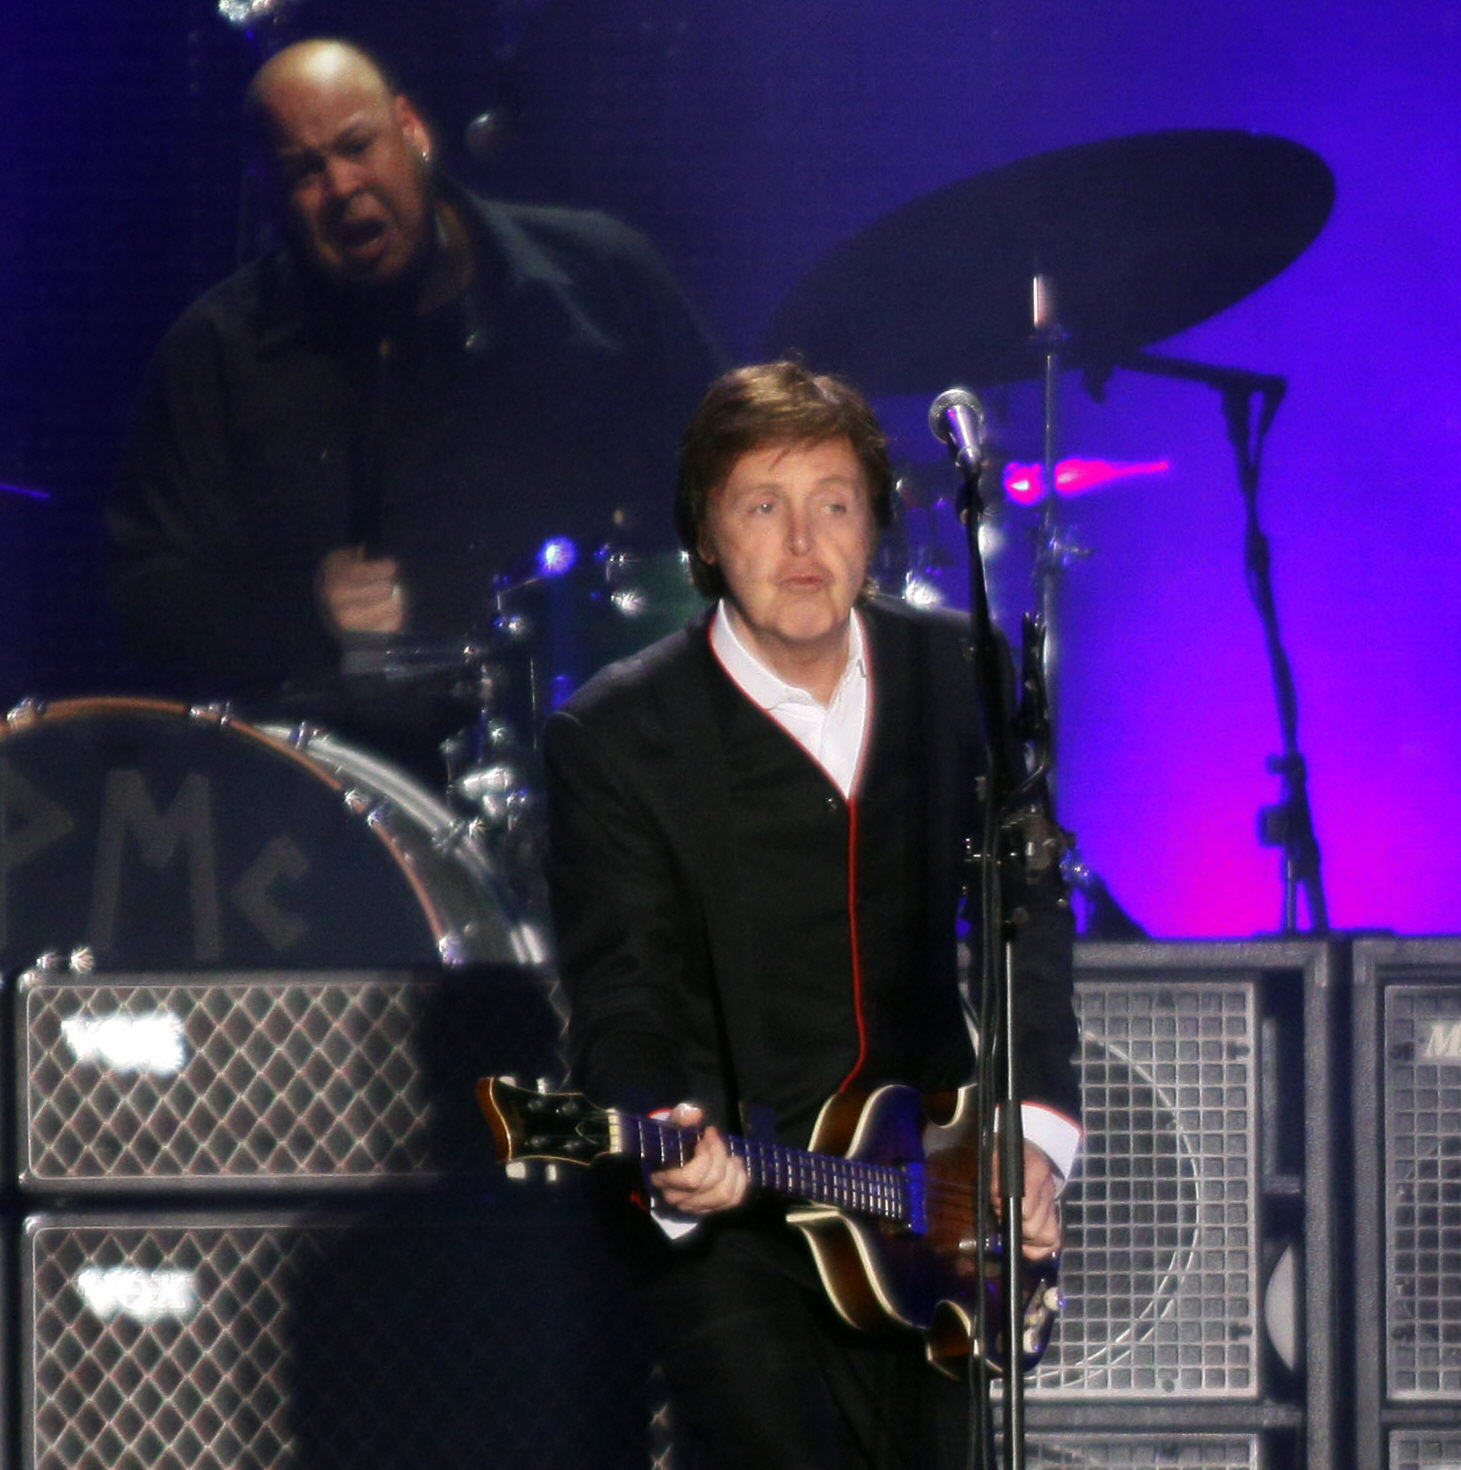 Paul McCartney, Beatles, Adele, Greg Kurstin, Hello, rock, pop